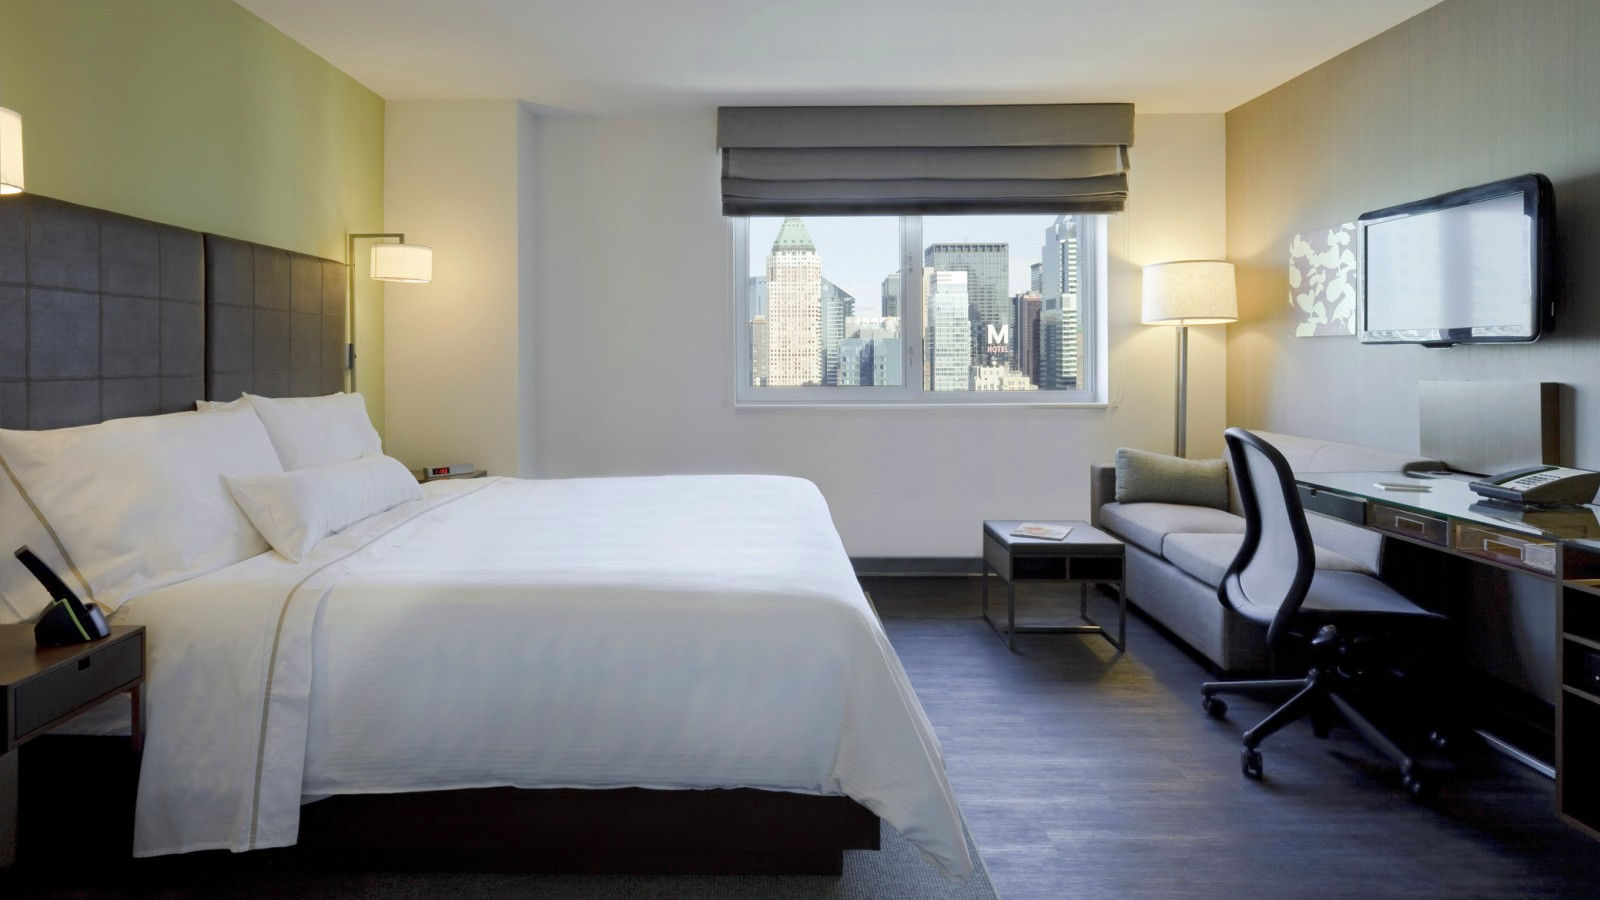 Times Square Hotel Rooms - Deluxe King Room